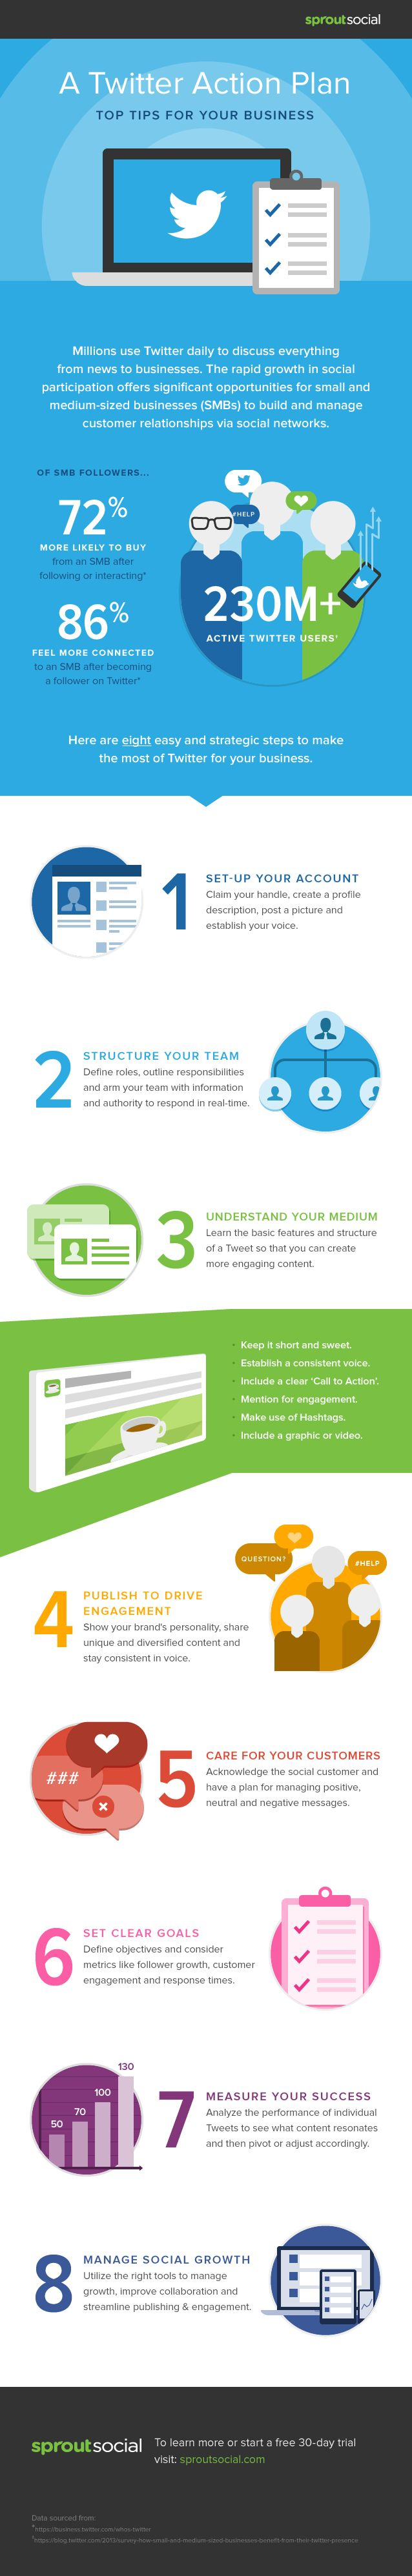 #SocialMedia managers may like to review this suggested #Twitter Action Plan to promote their #Brand